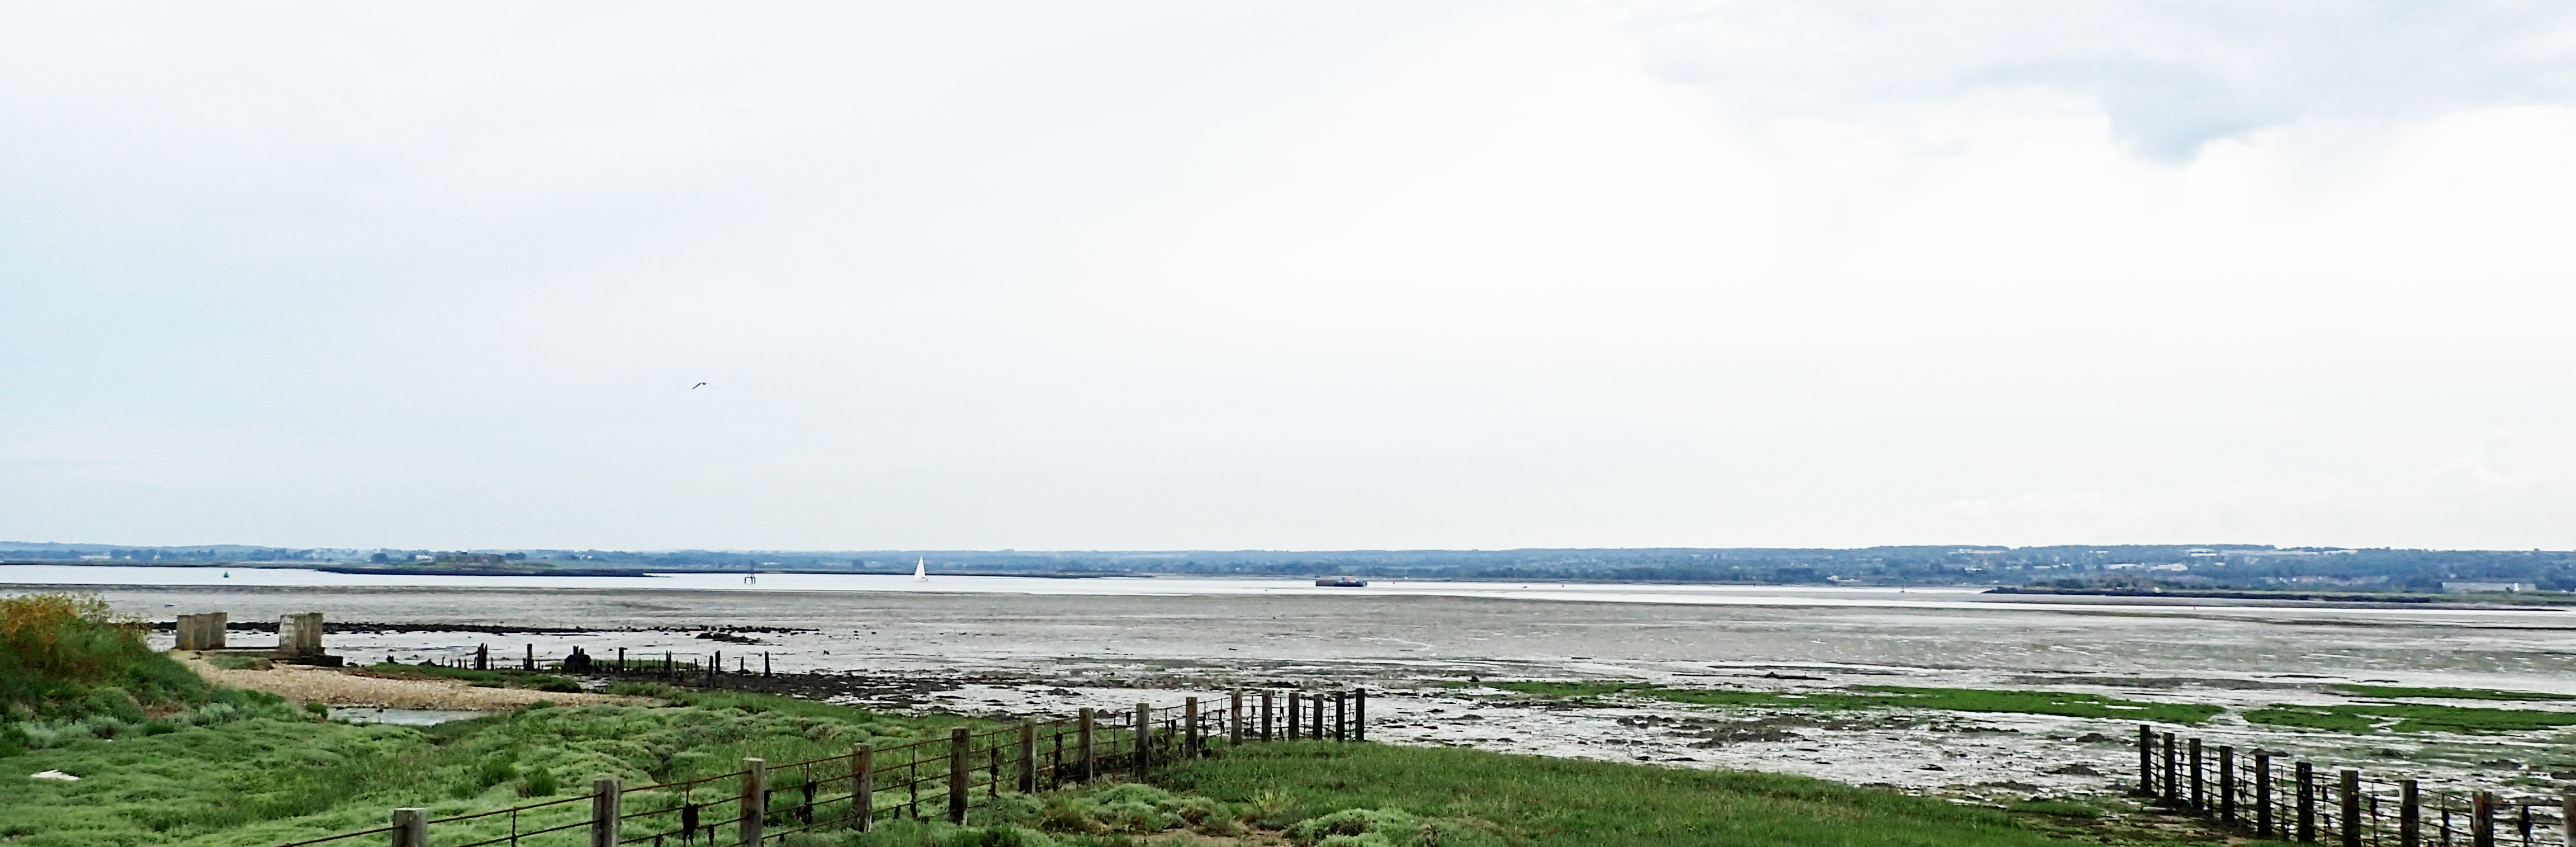 Darnet Fort (left) and Hoo Fort (right) can be seen on islands in the River Medway. Both were built on the recommendation of the 1859 Royal Commision and were eventually disarmed prior to the First World War though both were used as observation posts in the Second World War